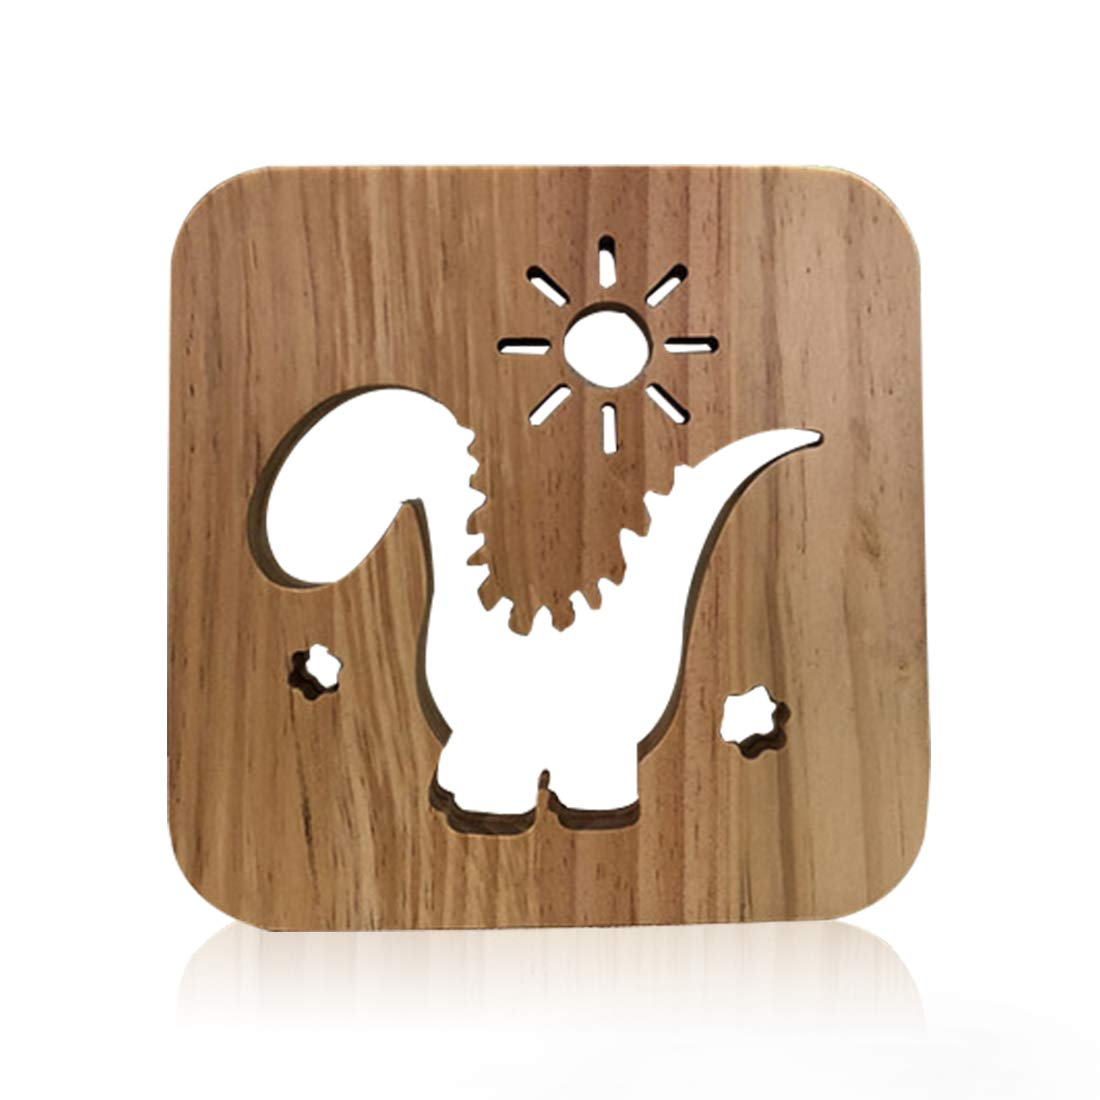 Wooden Dinosaur Led Lamp for Children, LeKong 3D Wooden Carving Patterns, USB Plug in, Gift for Birthday & Friendship, Fit for Halloween & Christmas Decoration, 2018 New